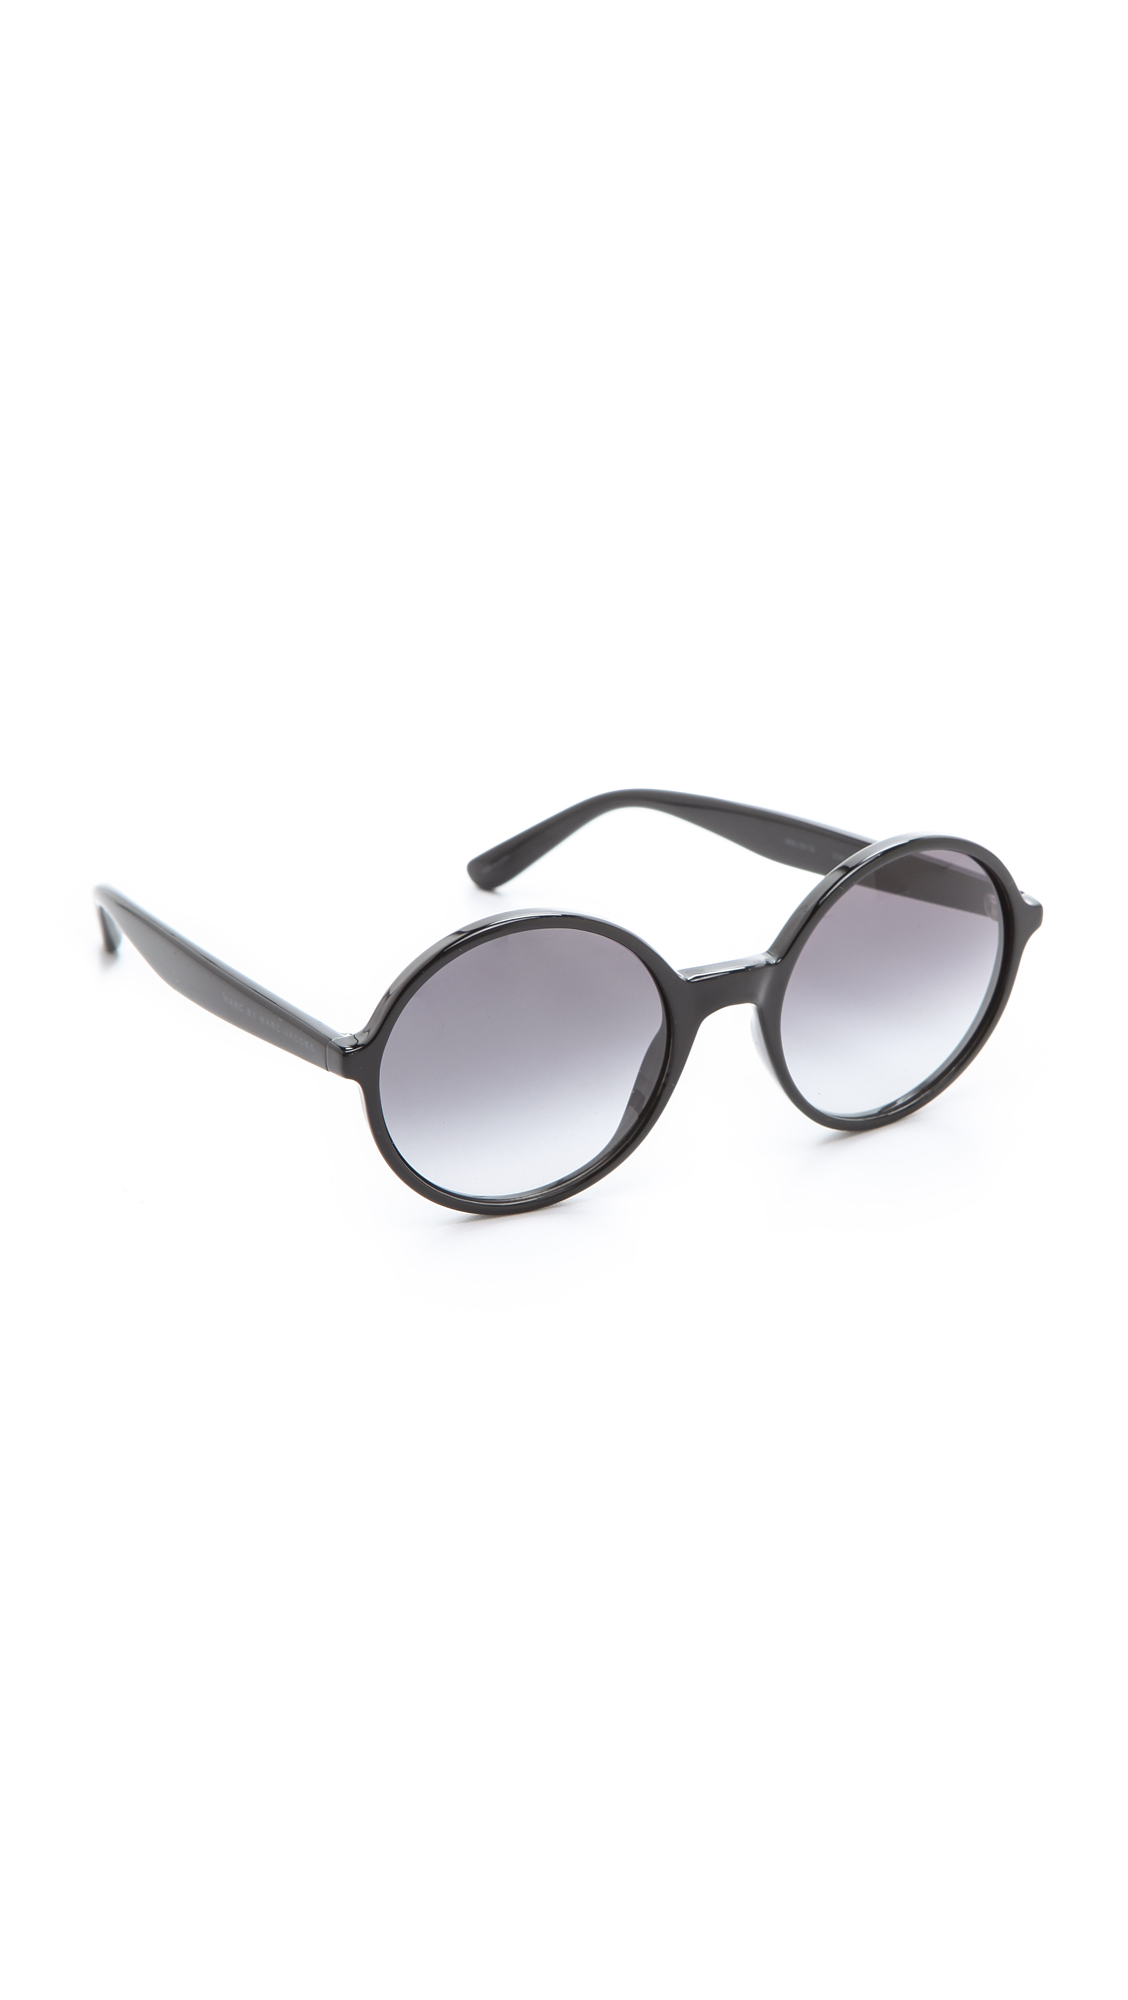 Marc By Marc Jacobs Round Frame Glasses : Marc by marc jacobs Oversized Round Sunglasses - Brown ...